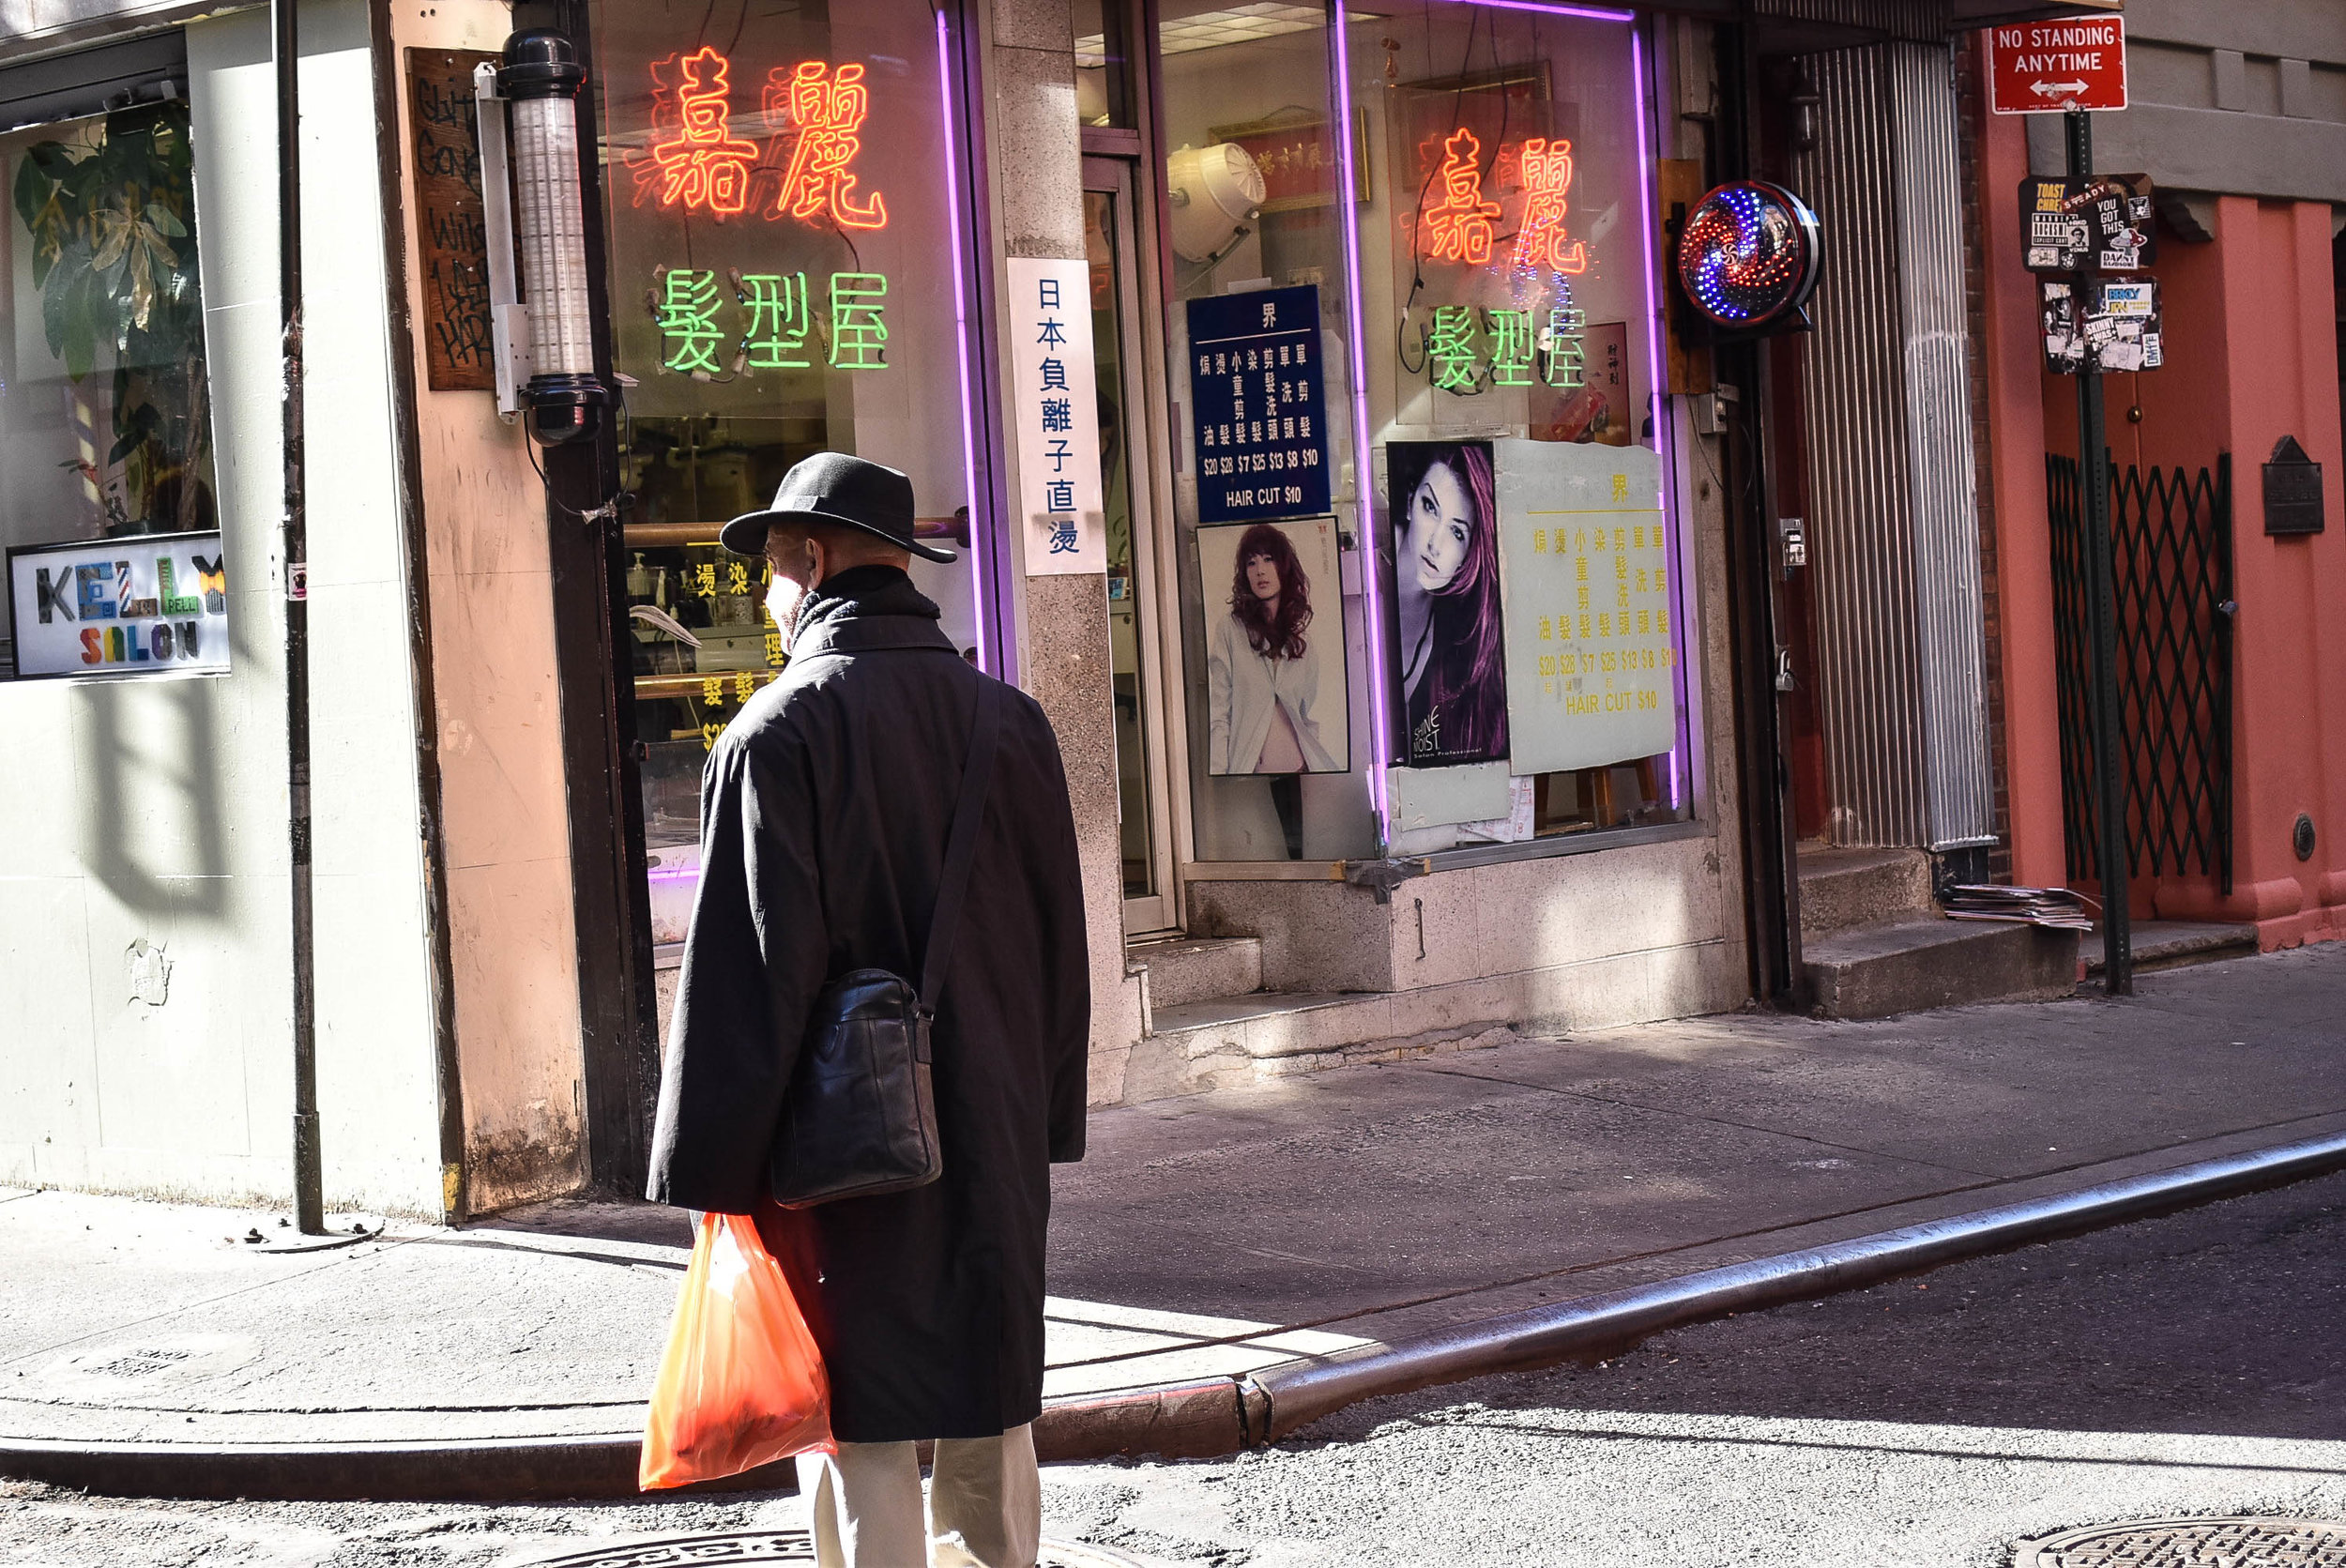 Older gentleman waiting with a bag of fish, Chinatown, NYC - Nov 2016